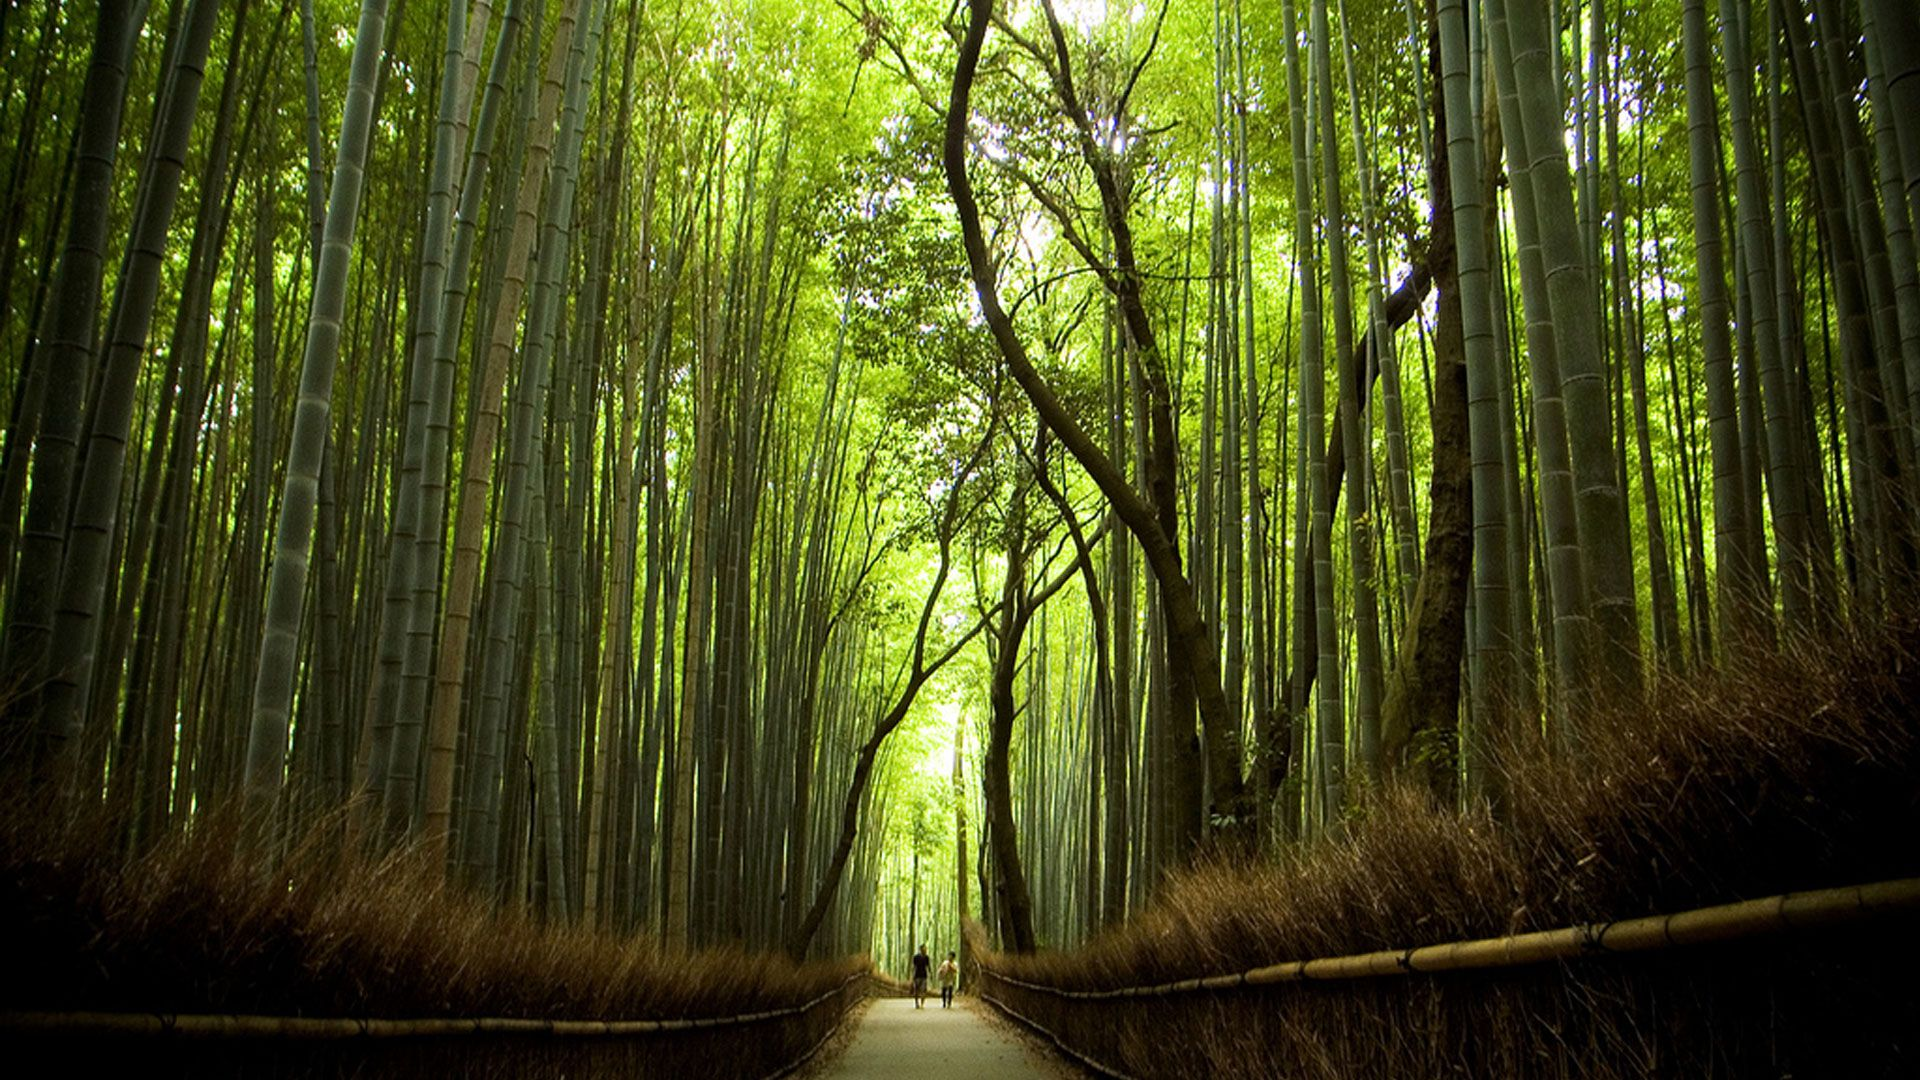 wallpaper sagano bamboo forest in japan [1920x1080] | high quality